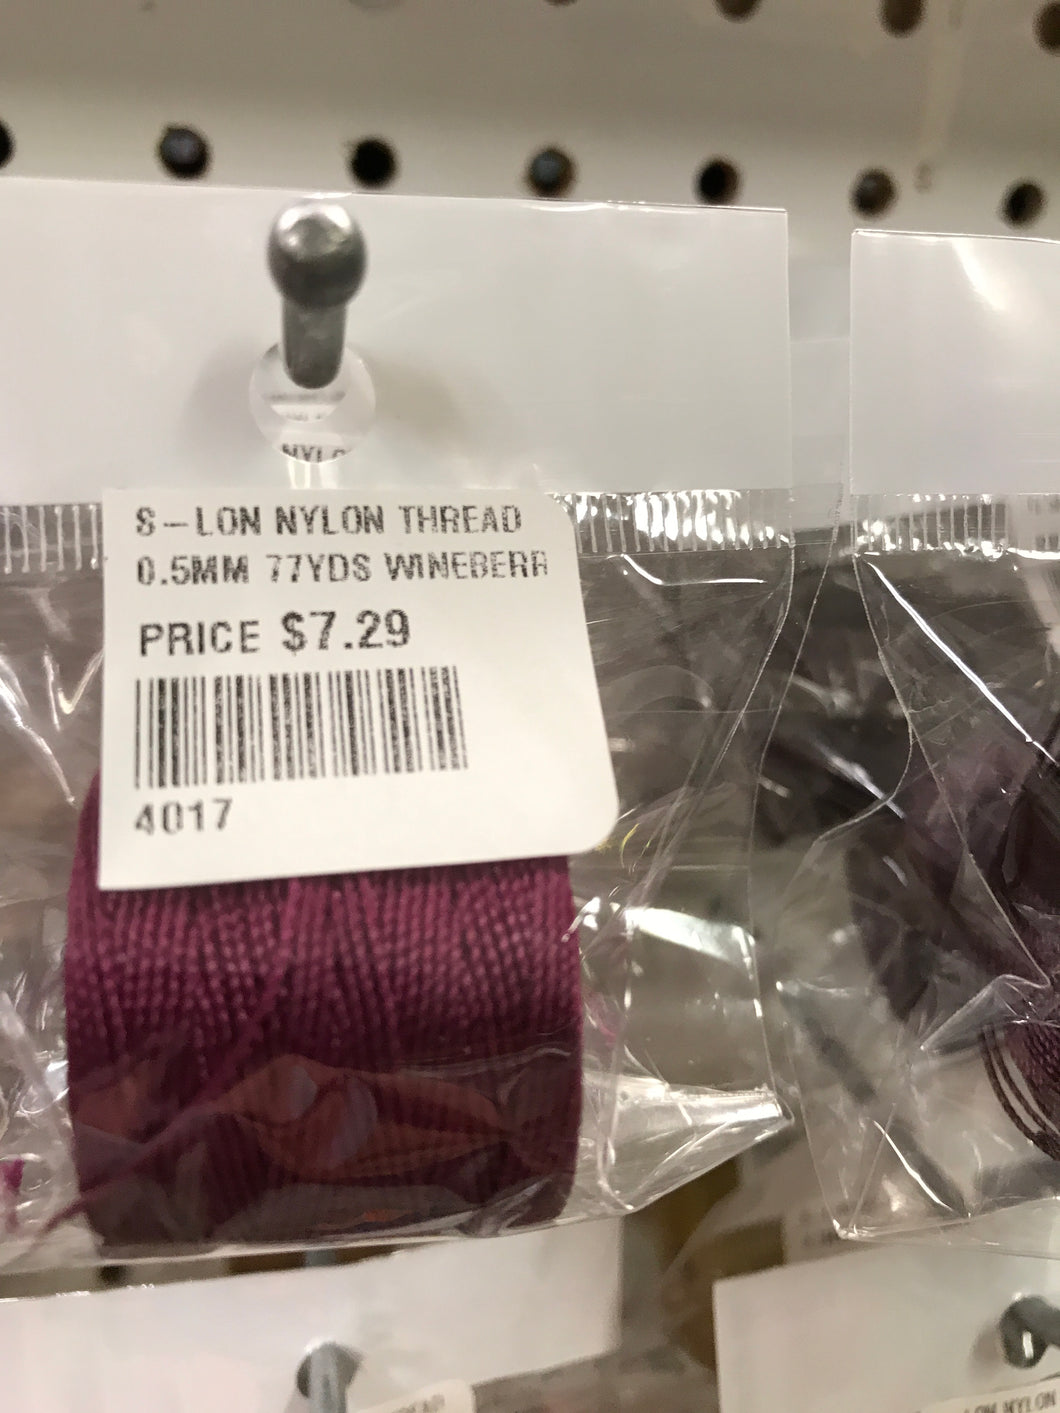 S-LON NYLON THREAD 0.5MM 77YDS WINEBERRY